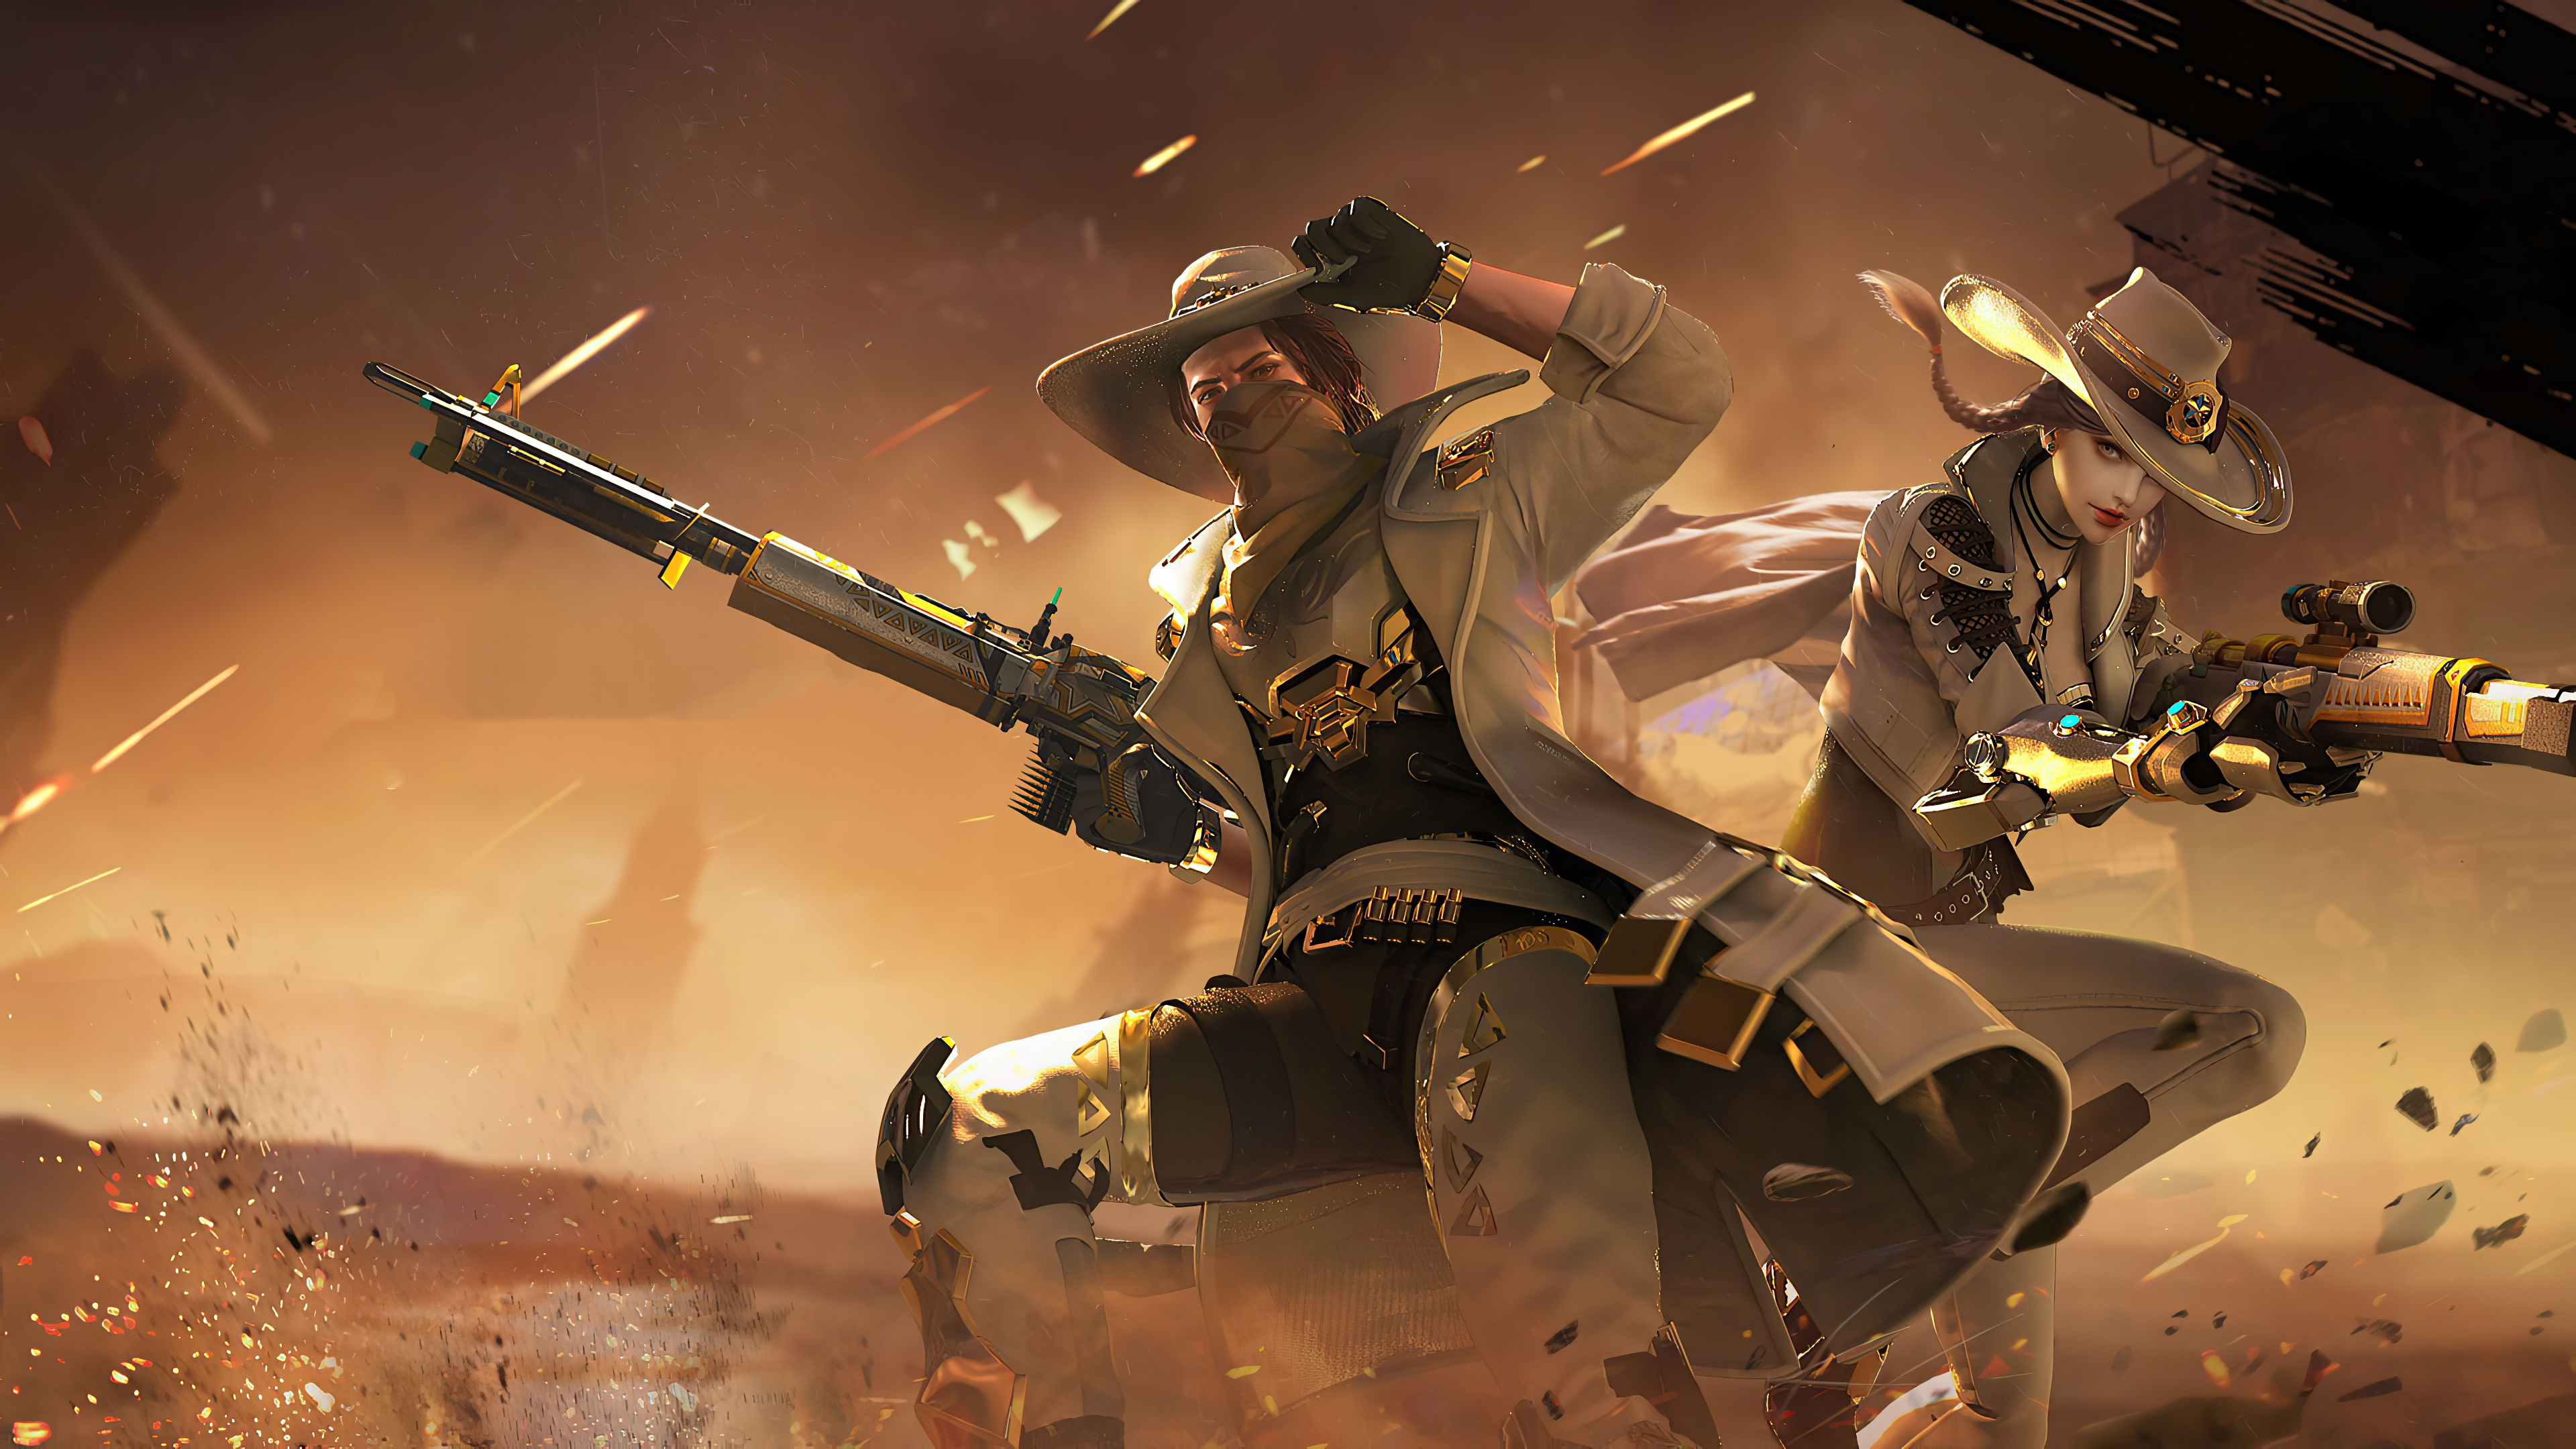 10 Garena Free Fire Hd Wallpapers Backgrounds